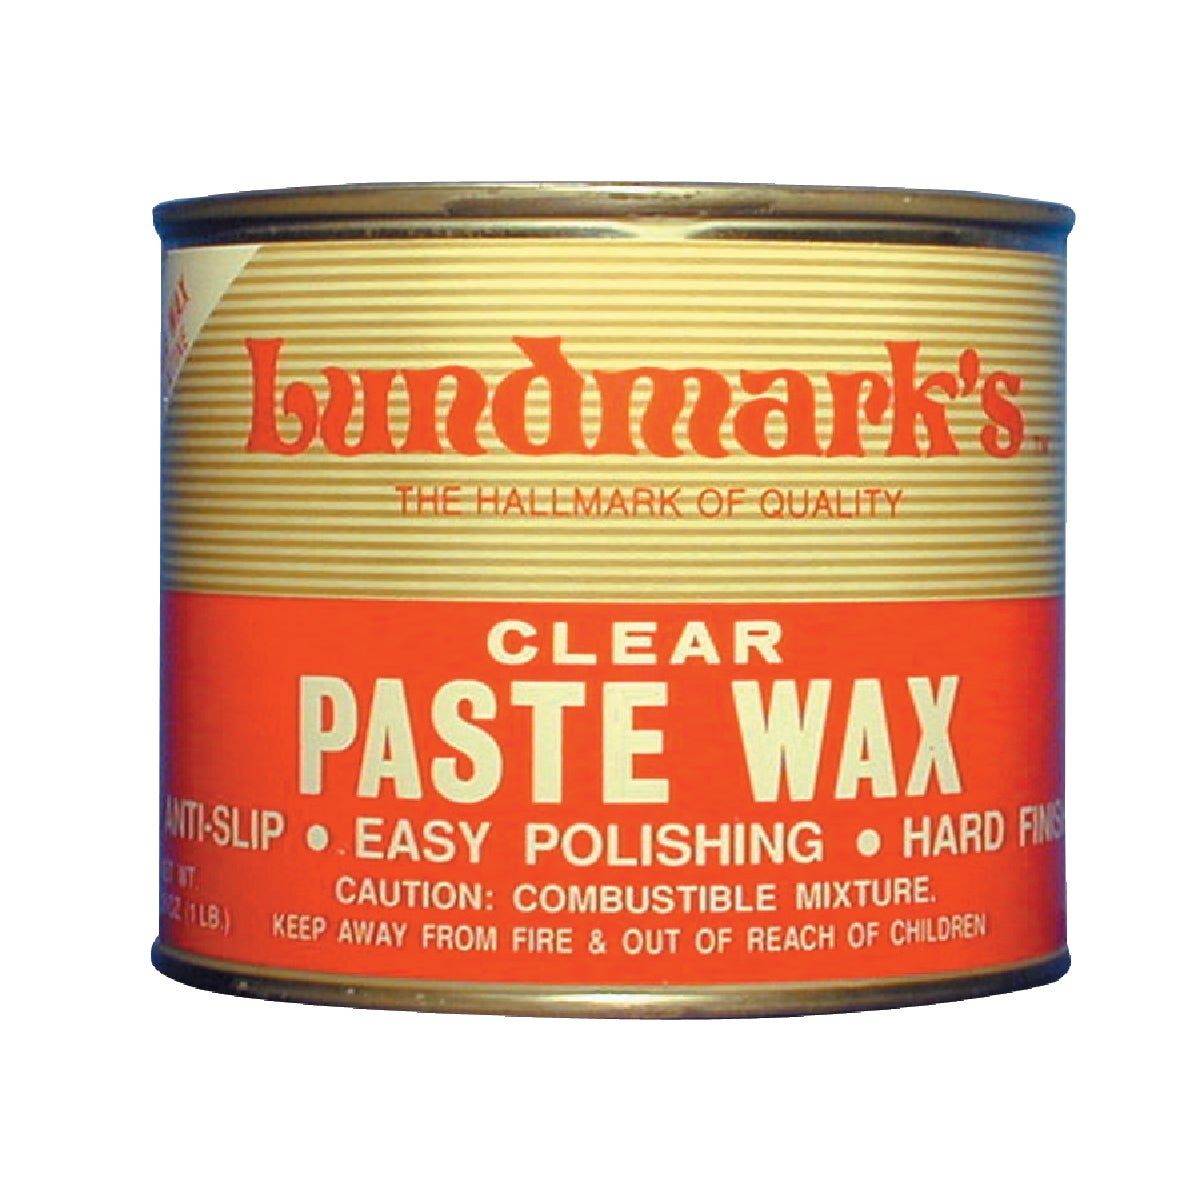 1LB CLEAR PASTE WAX - 3206P001-6 by Lundmark Wax Co